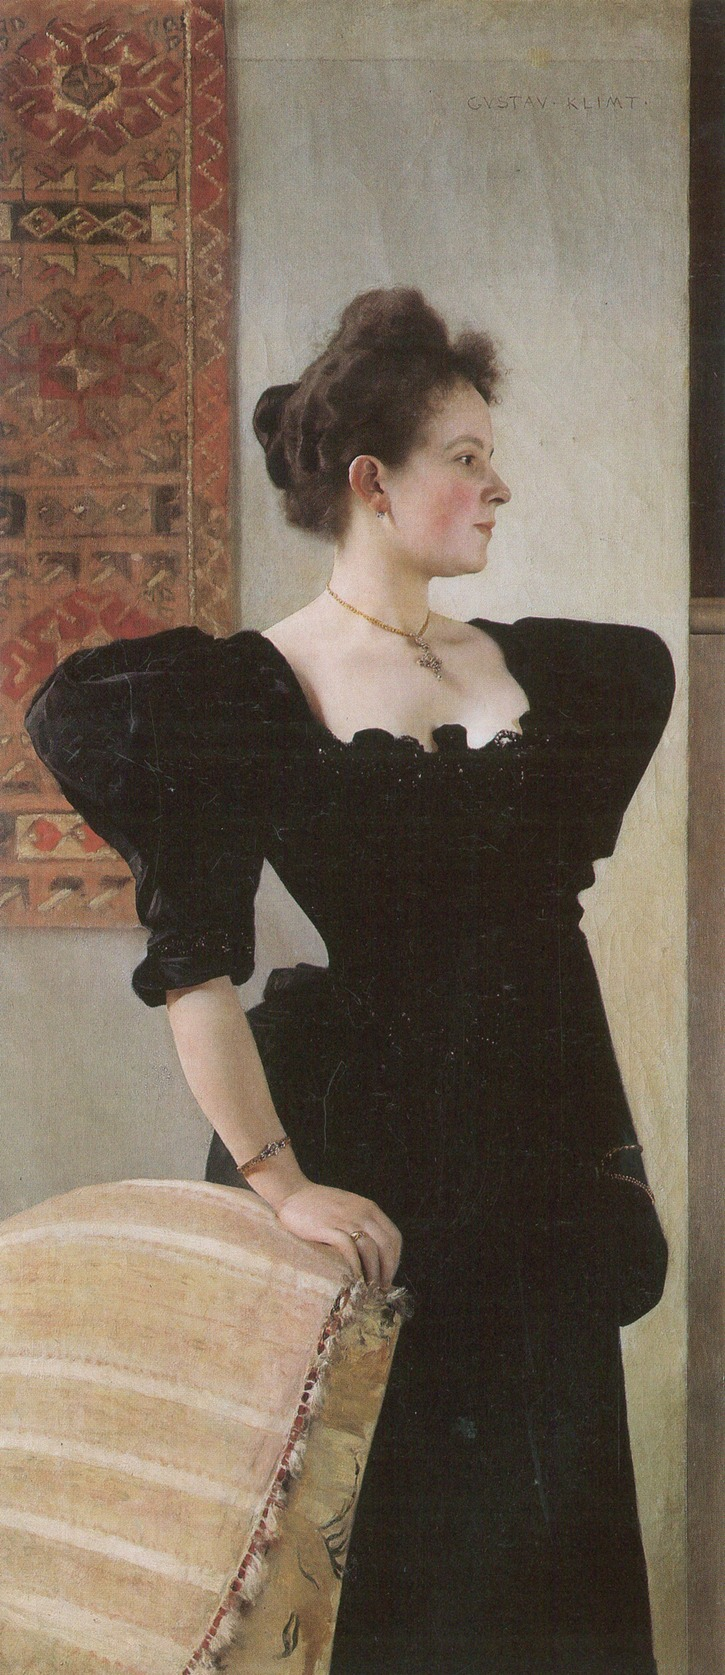 1894 Marie Breunig by Gutav Klimt (private collection) From Wikipaintings